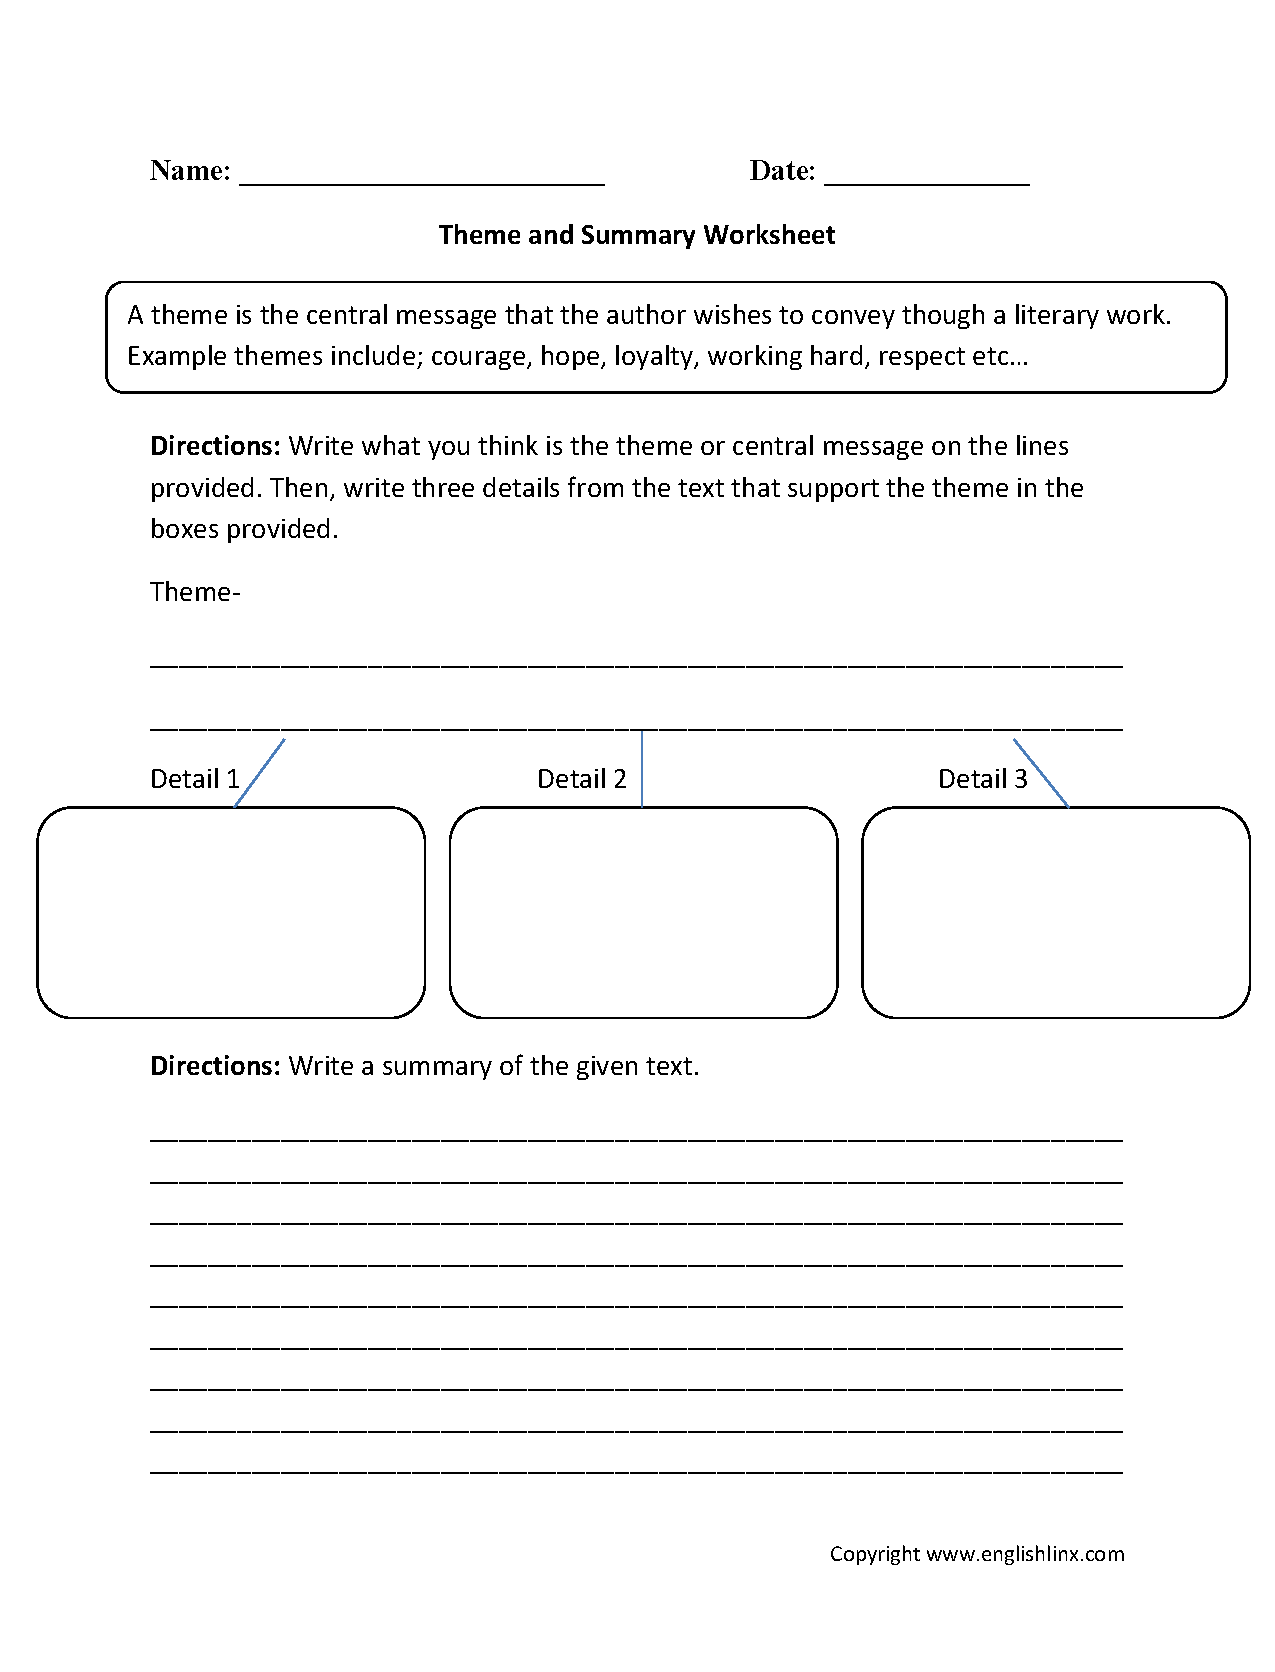 Worksheets Worksheets On Summarizing theme worksheets and summary worksheets